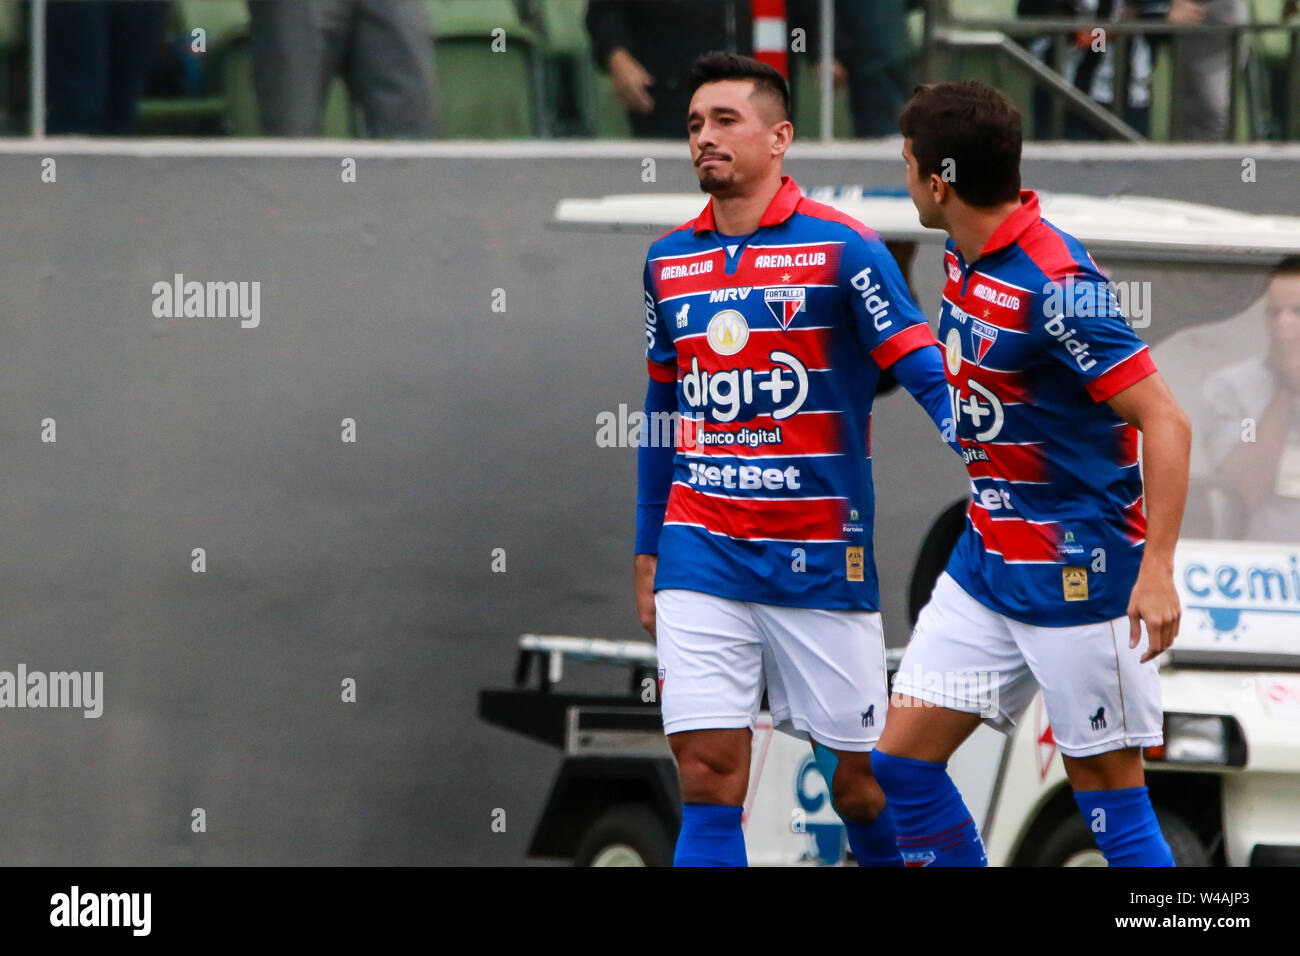 Belo Horizonte, Brazil. 21st July, 2019. MG vs Fortaleza, a match valid for the 2019zilian Championship, held at Arena Independêendência, Belo Horizonte, MG. Credit: Dudu Macedo/FotoArena/Alamy Live News - Stock Image